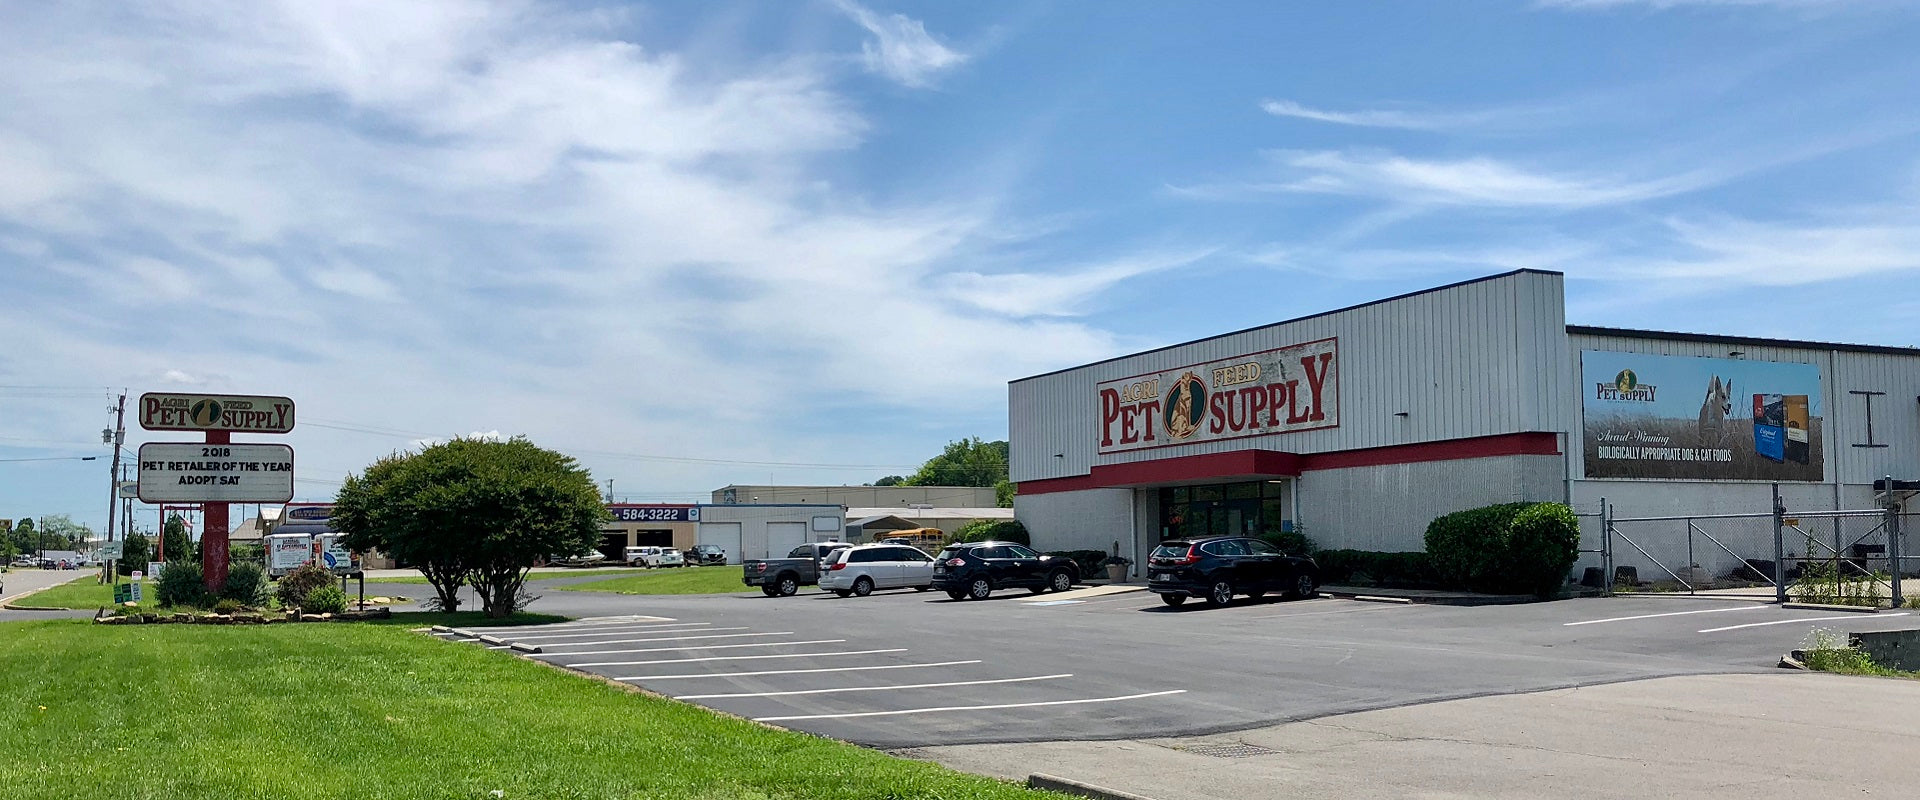 shop agrifeed pet supply